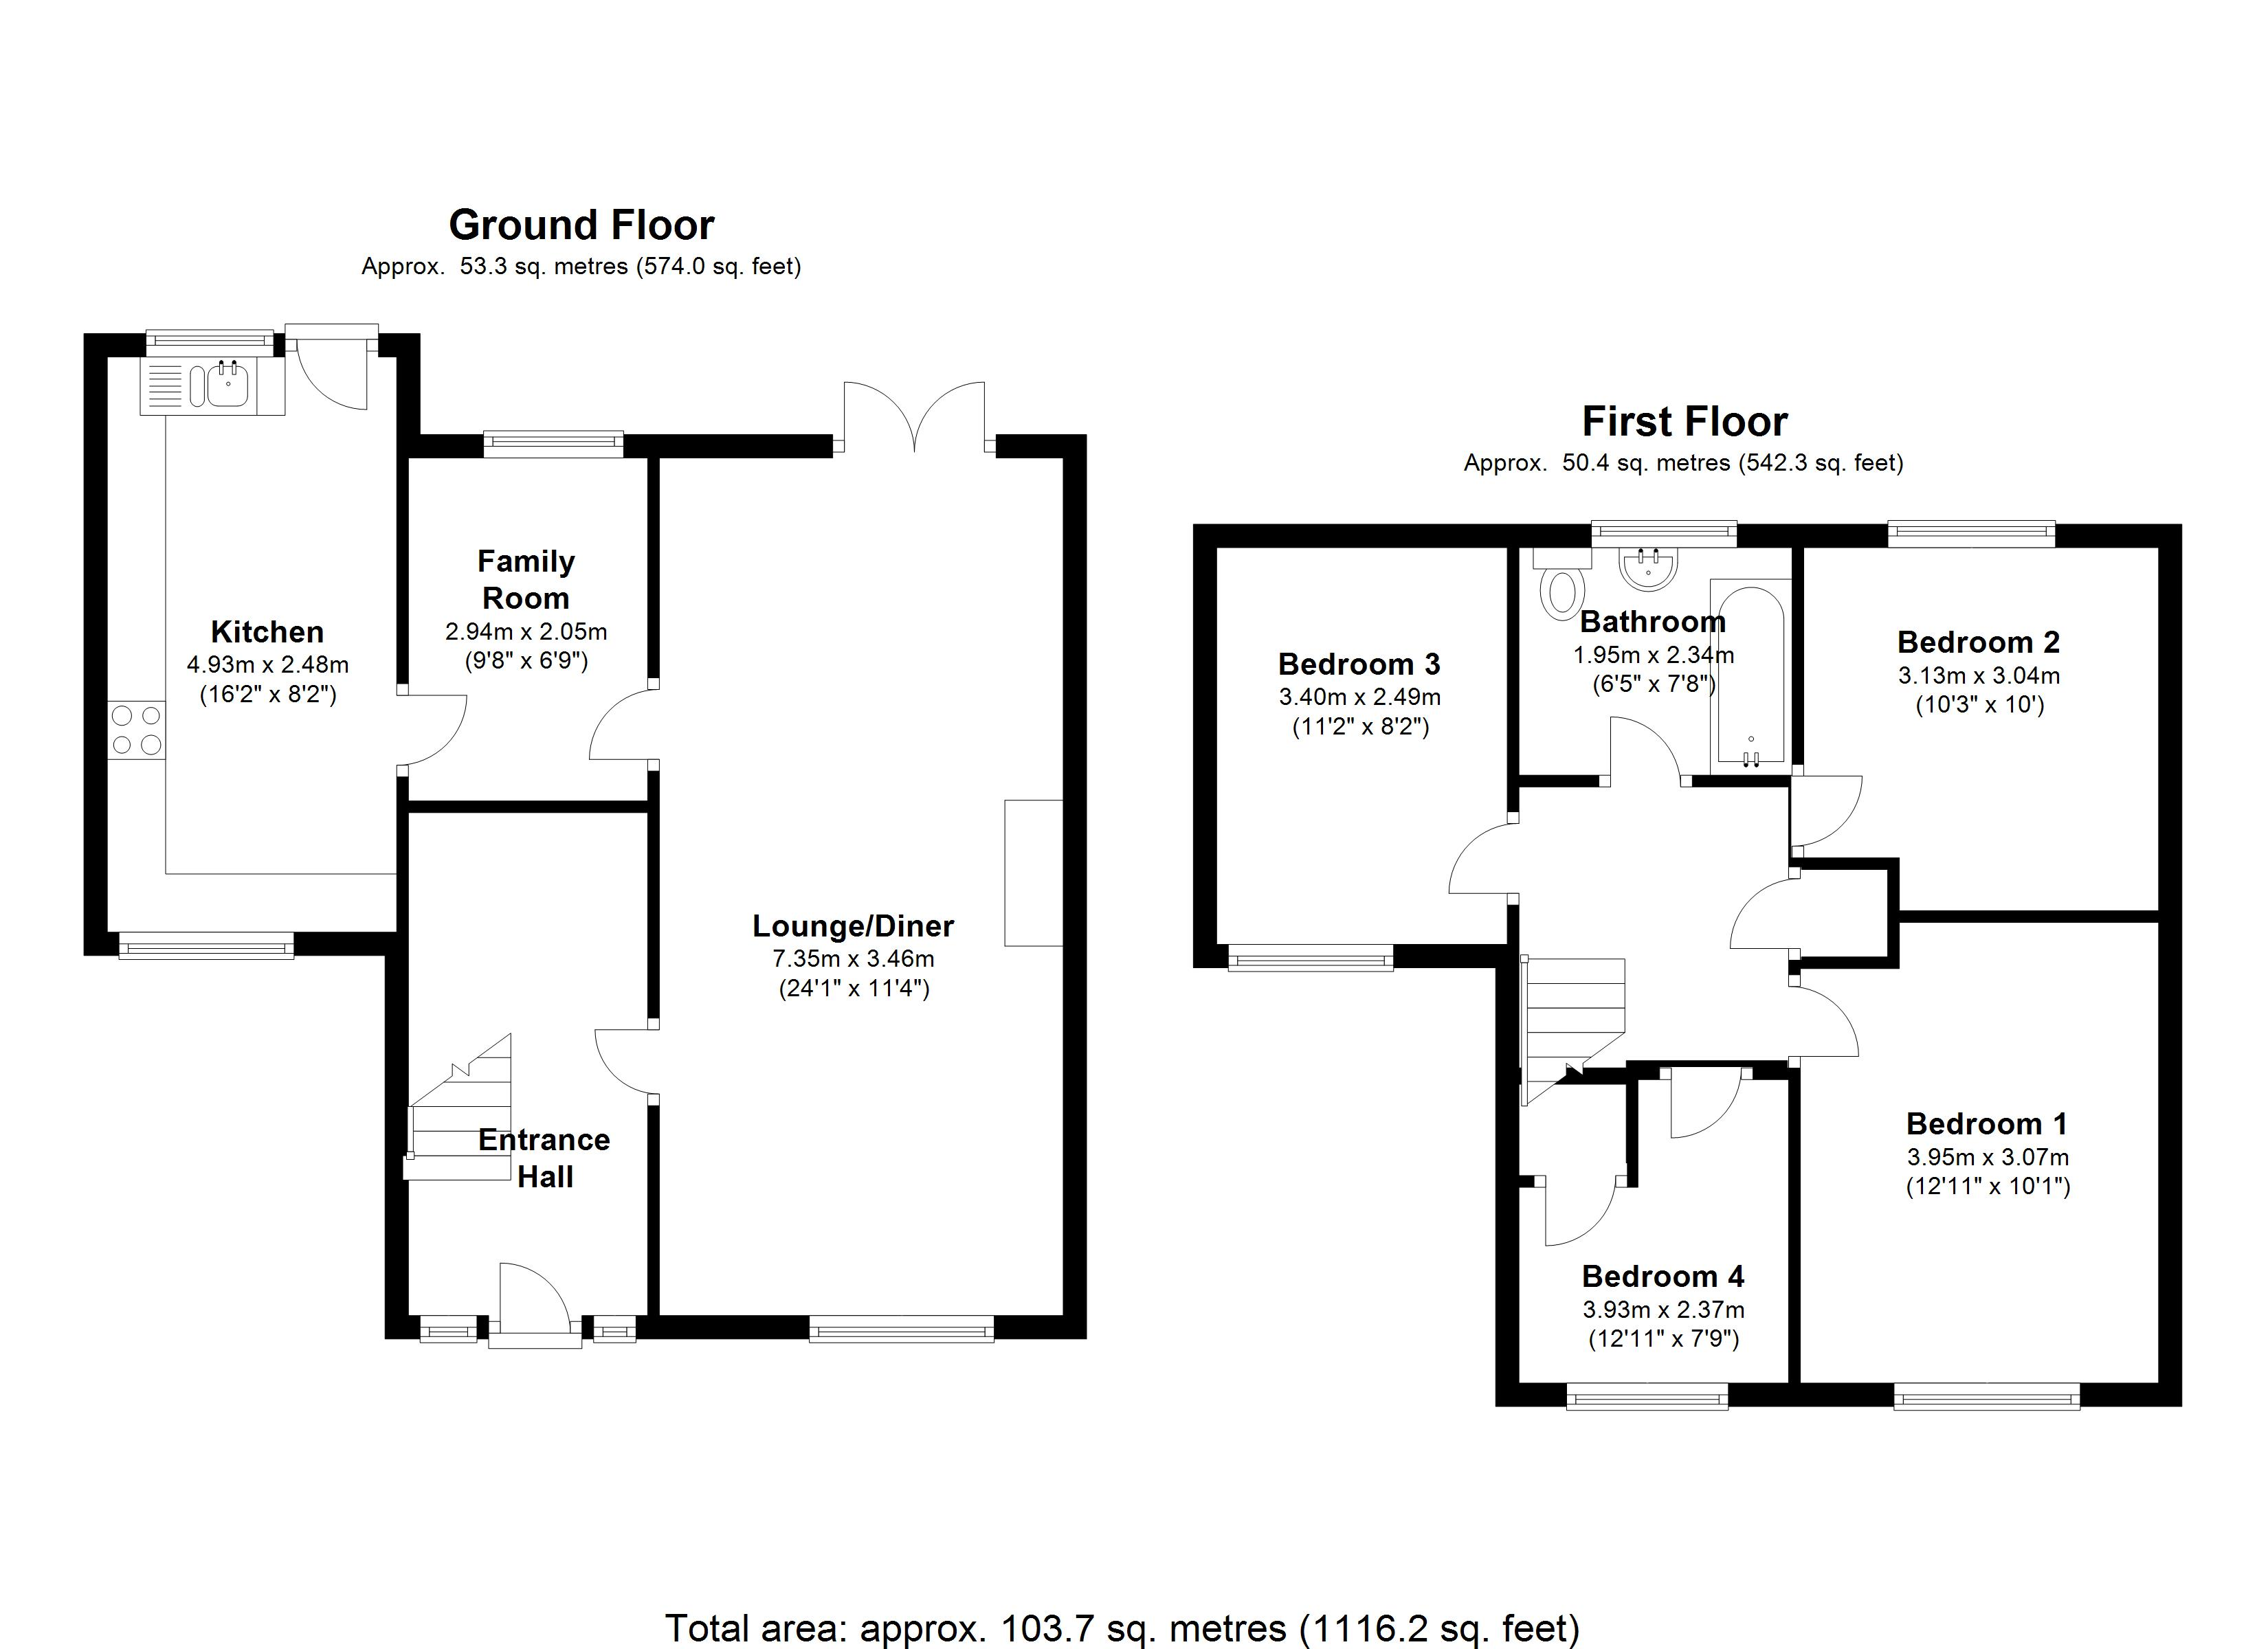 Adelaide Road,Doncaster, DN6 floor plan